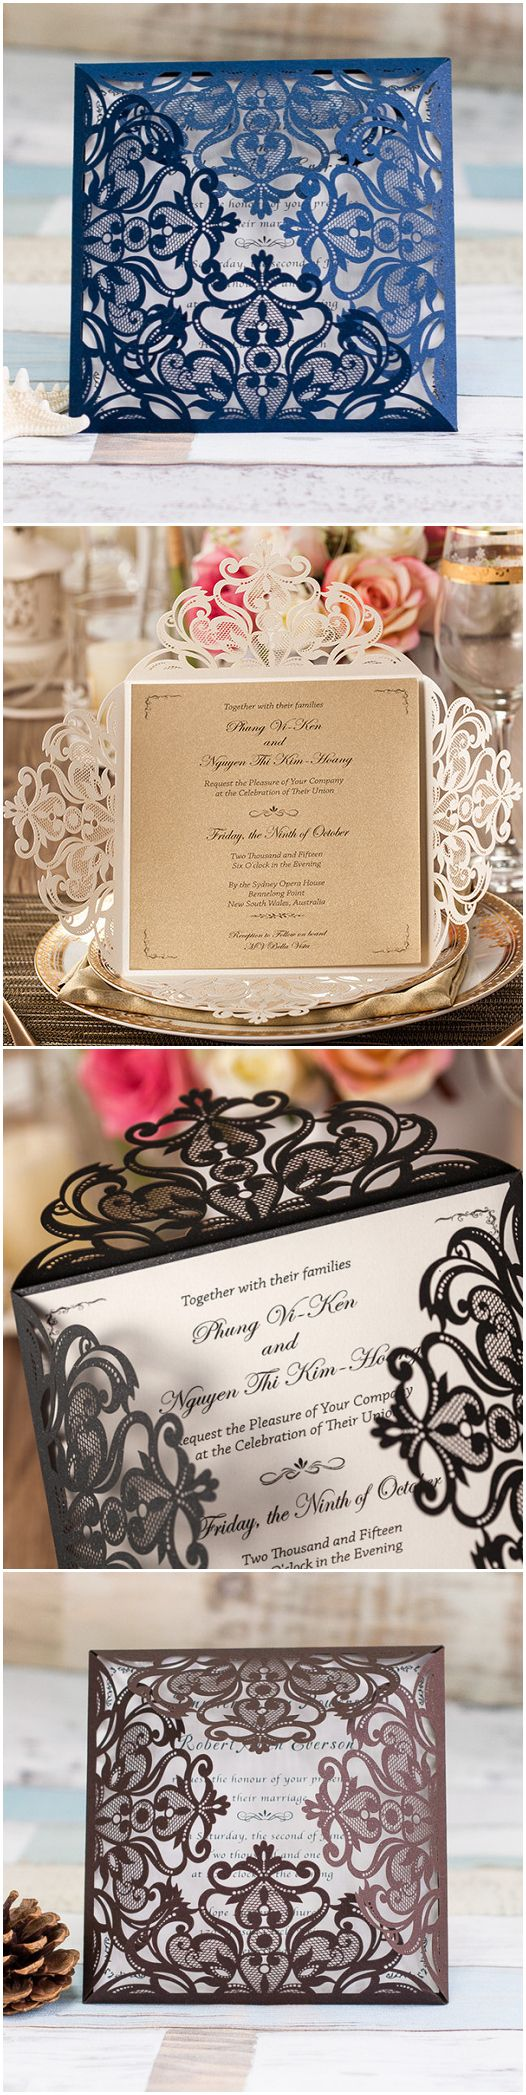 307 Best Wedding Invitations Save The Date Images On Pinterest